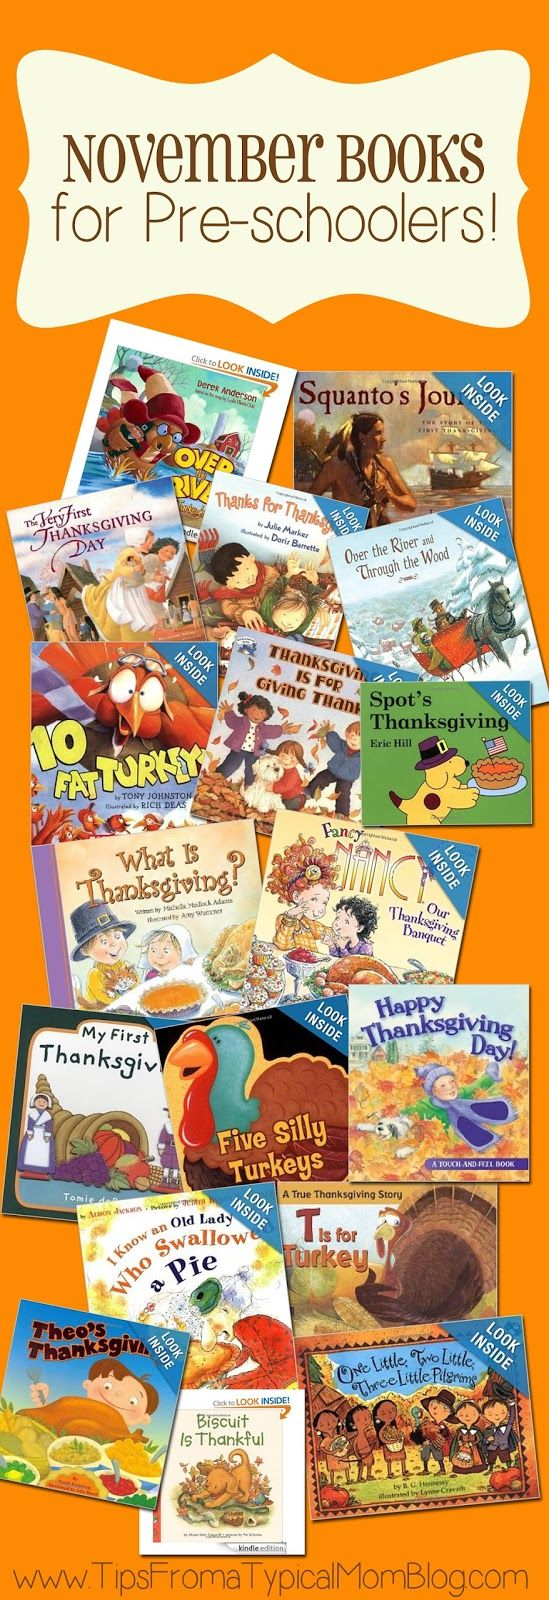 Thanksgiving book list for preschoolers!  I love the illustrations in these books, your kids will love them! #thanksgivingbooks